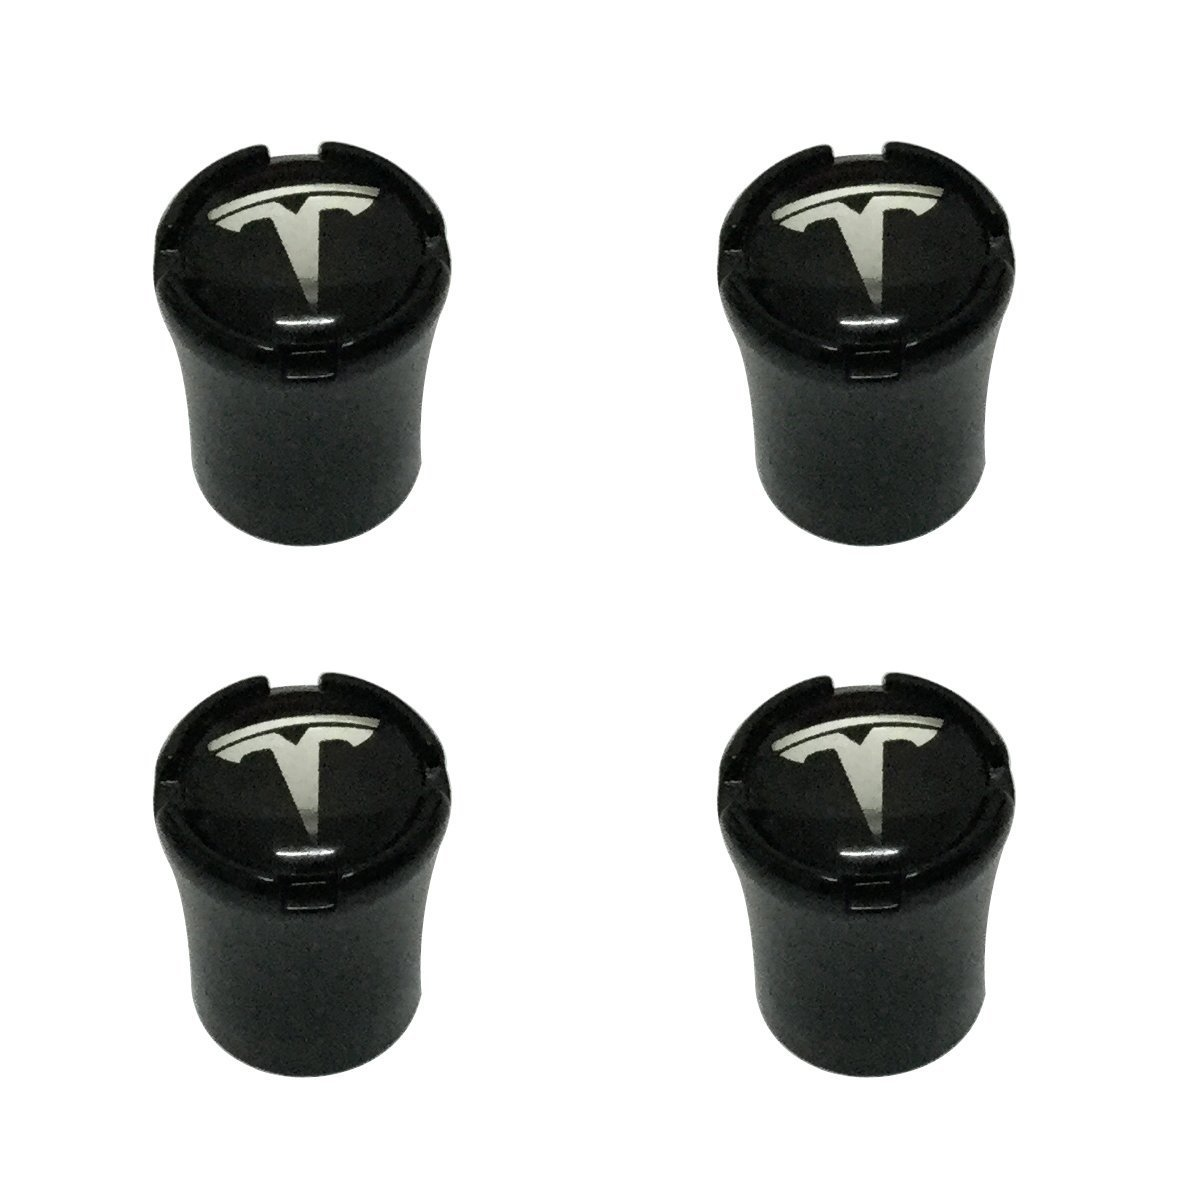 New USA Fast Ship 4pcs Black Color Car Dustproof Caps Tire Wheel Stem Air Valve Caps Cover Car Accessories Compatible Fit For Electric Sedan SUV Car Design (TESLA) Tampa